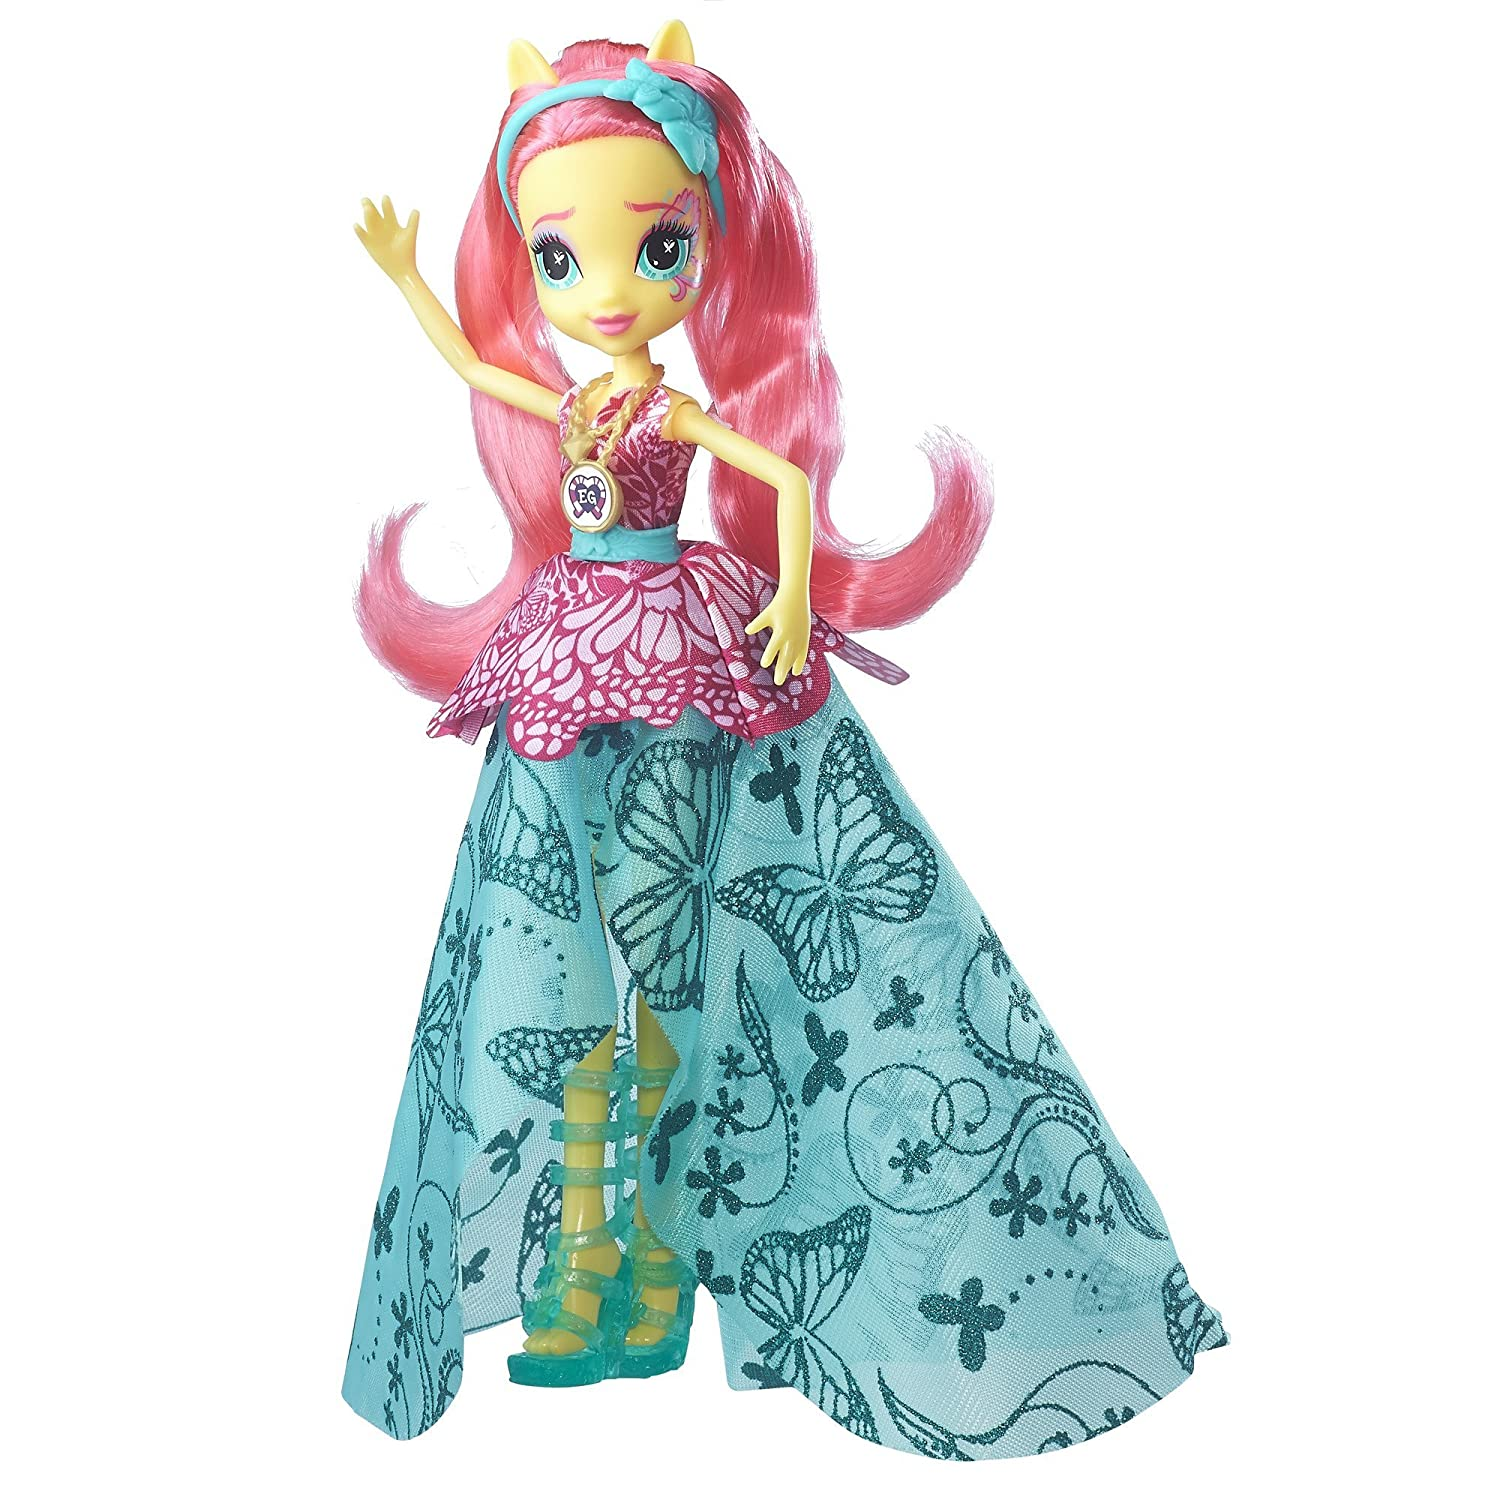 My Little Pony Equestria Girls Legend of Everfree Applejack Doll